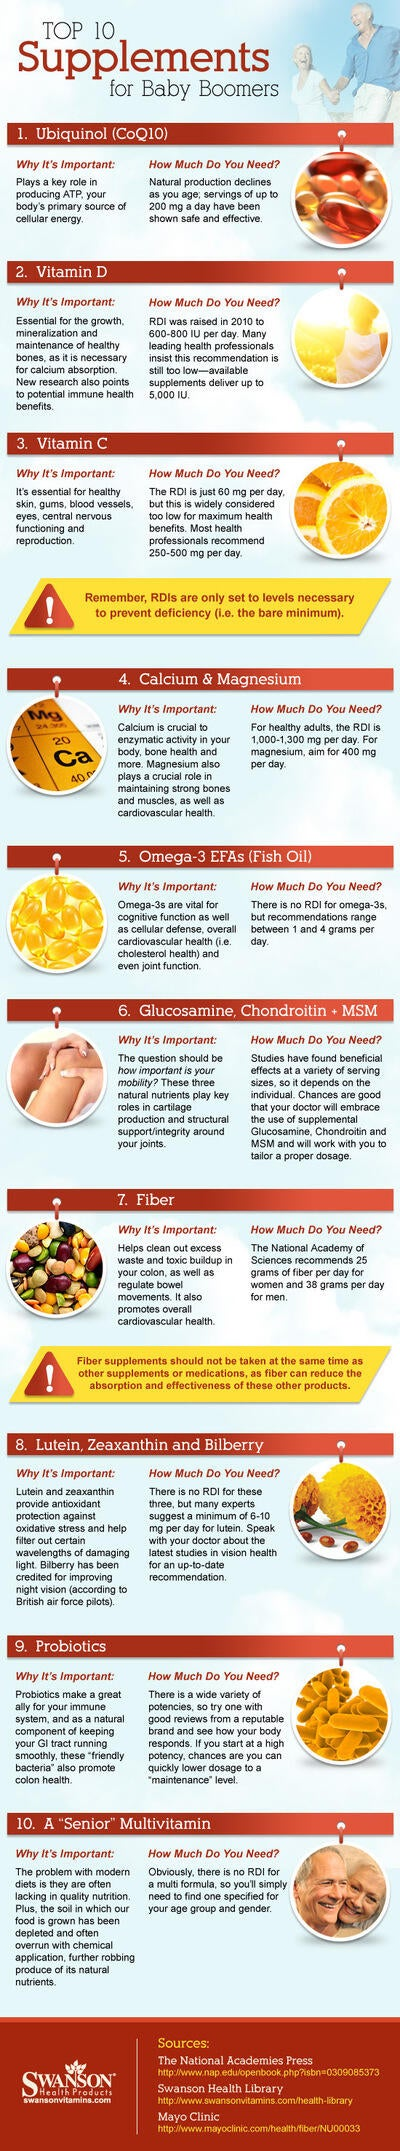 Top 10 Supplements for Baby Boomers (INFOGRAPHIC)